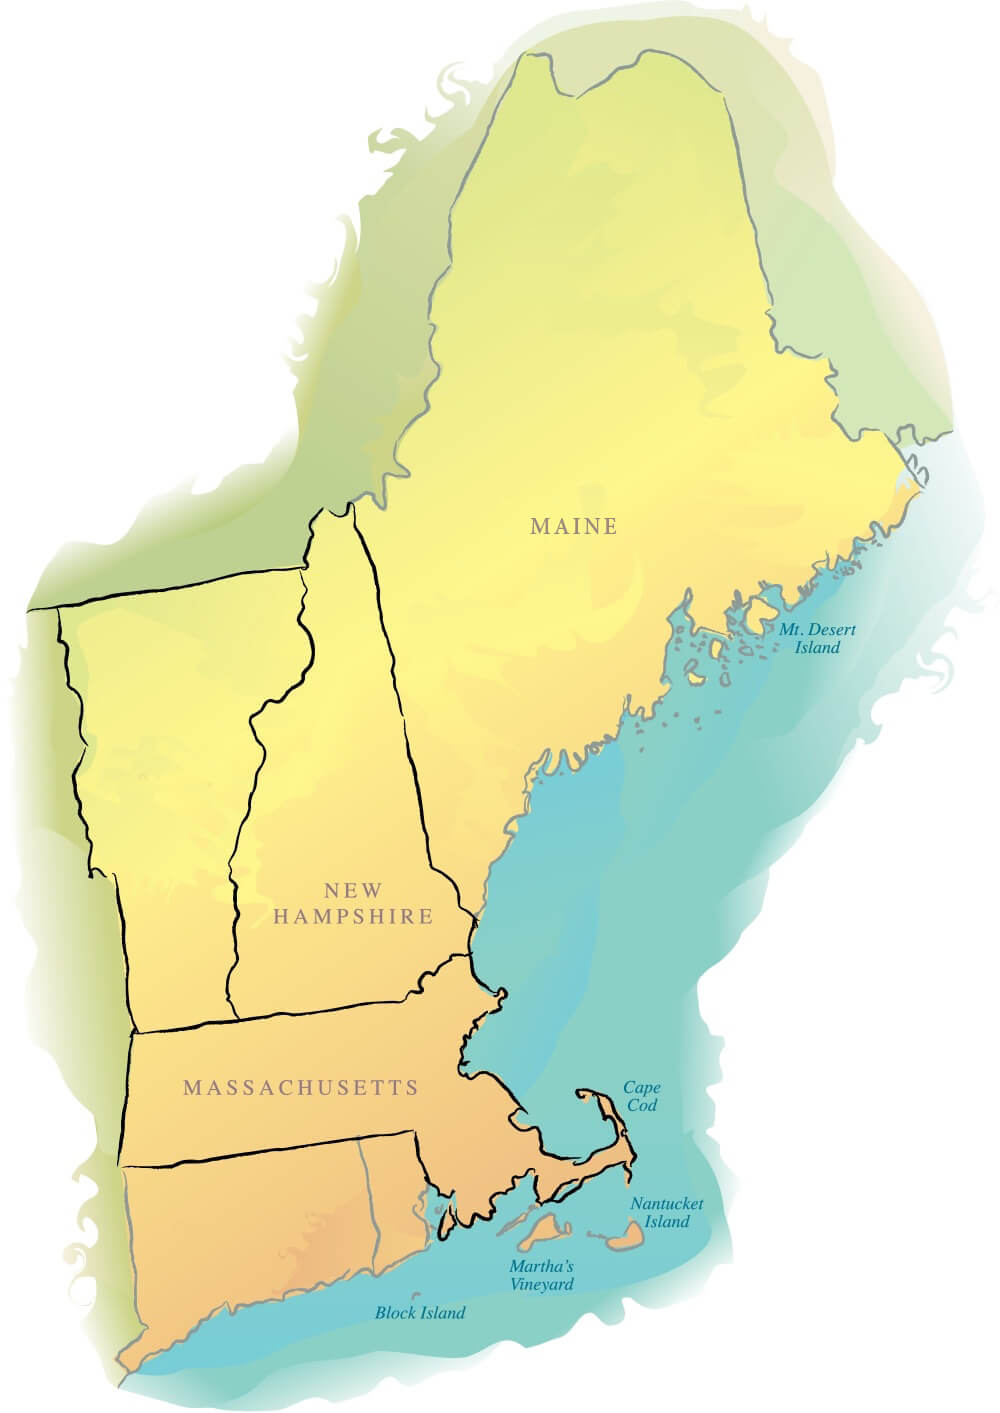 property & casualty insurance in ma